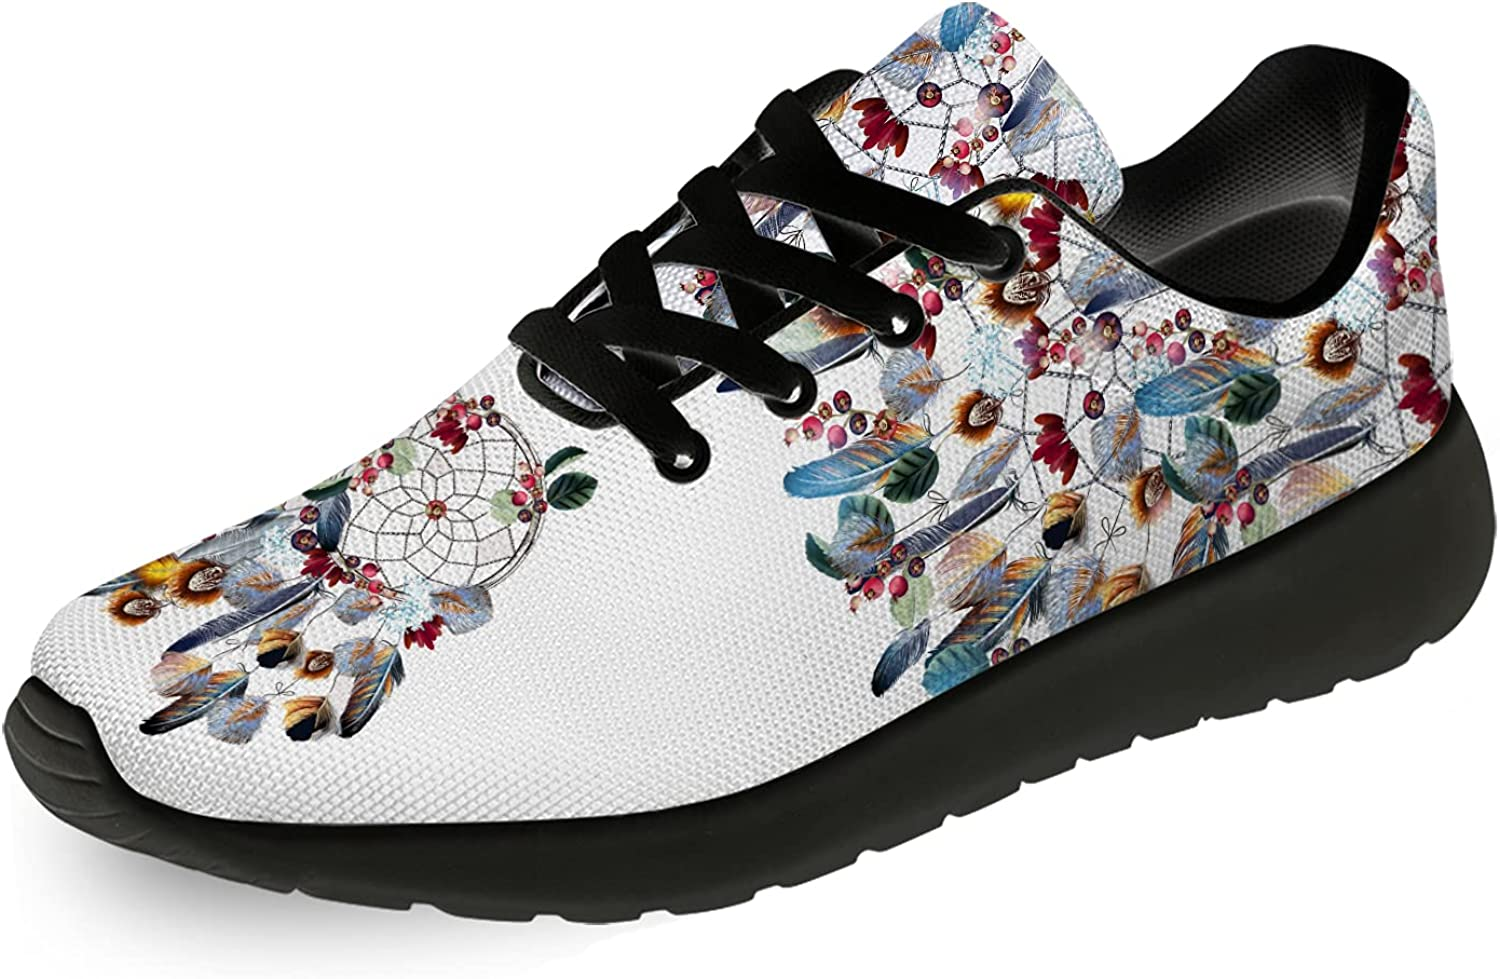 Max 58% OFF Uminder Men's Women's Boho Shoes Print Lace-up Comfort 3D Directly managed store Ultra